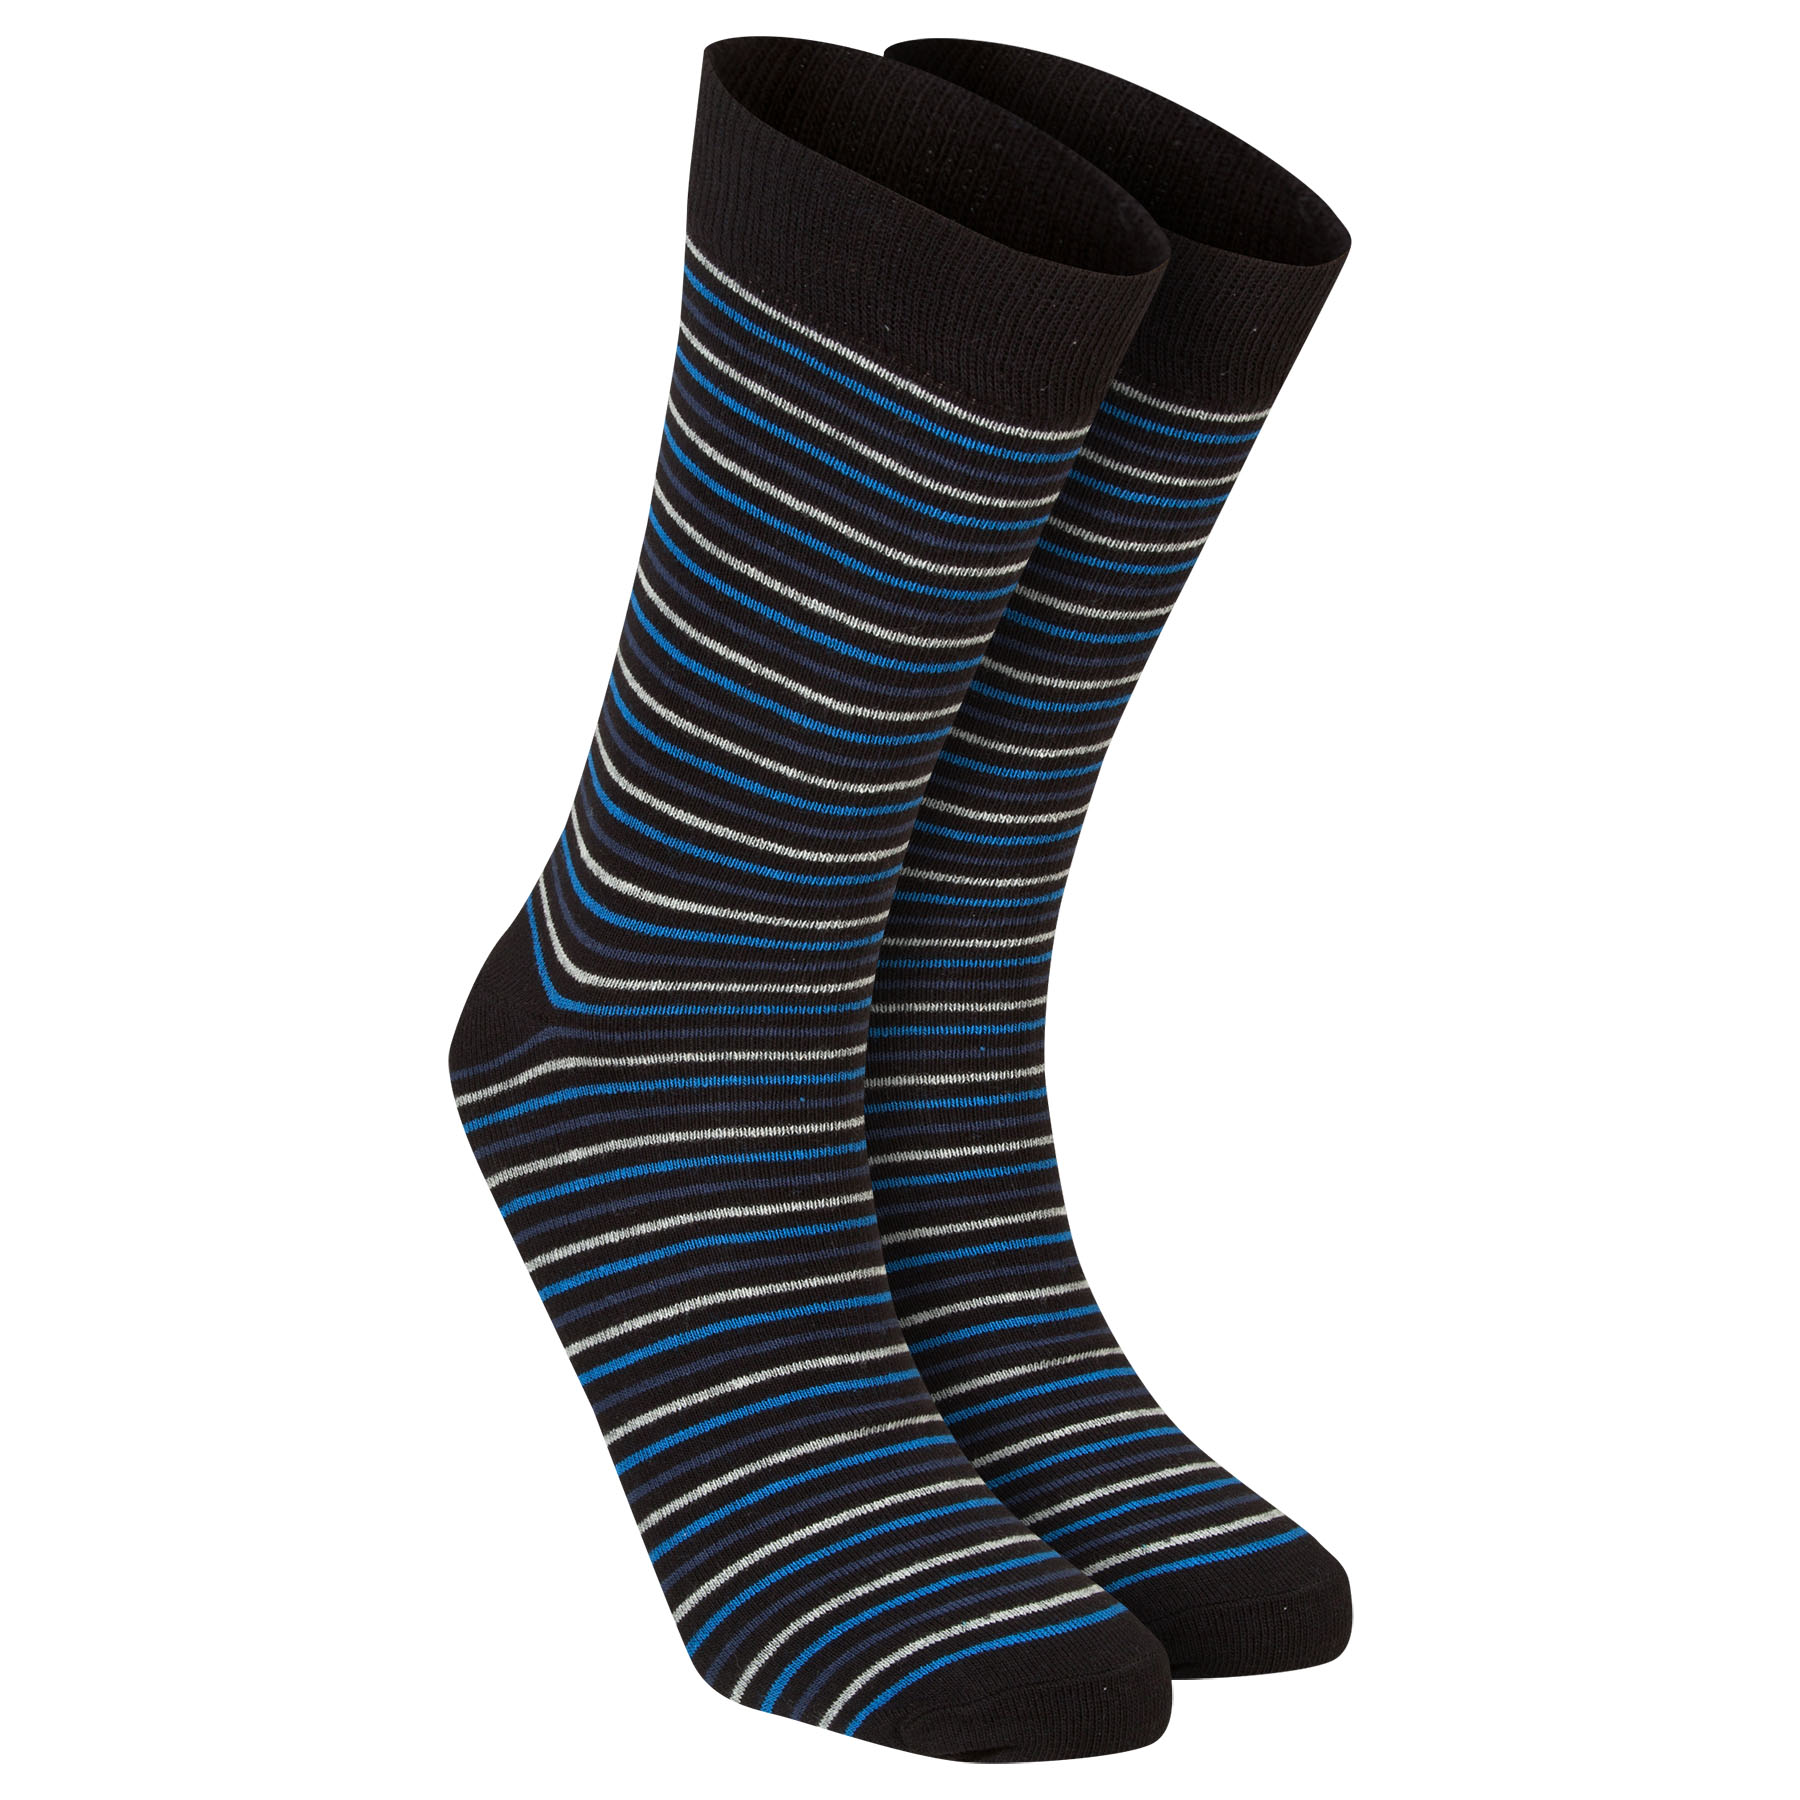 Chelsea Pin Stripe Socks - Multi - Mens